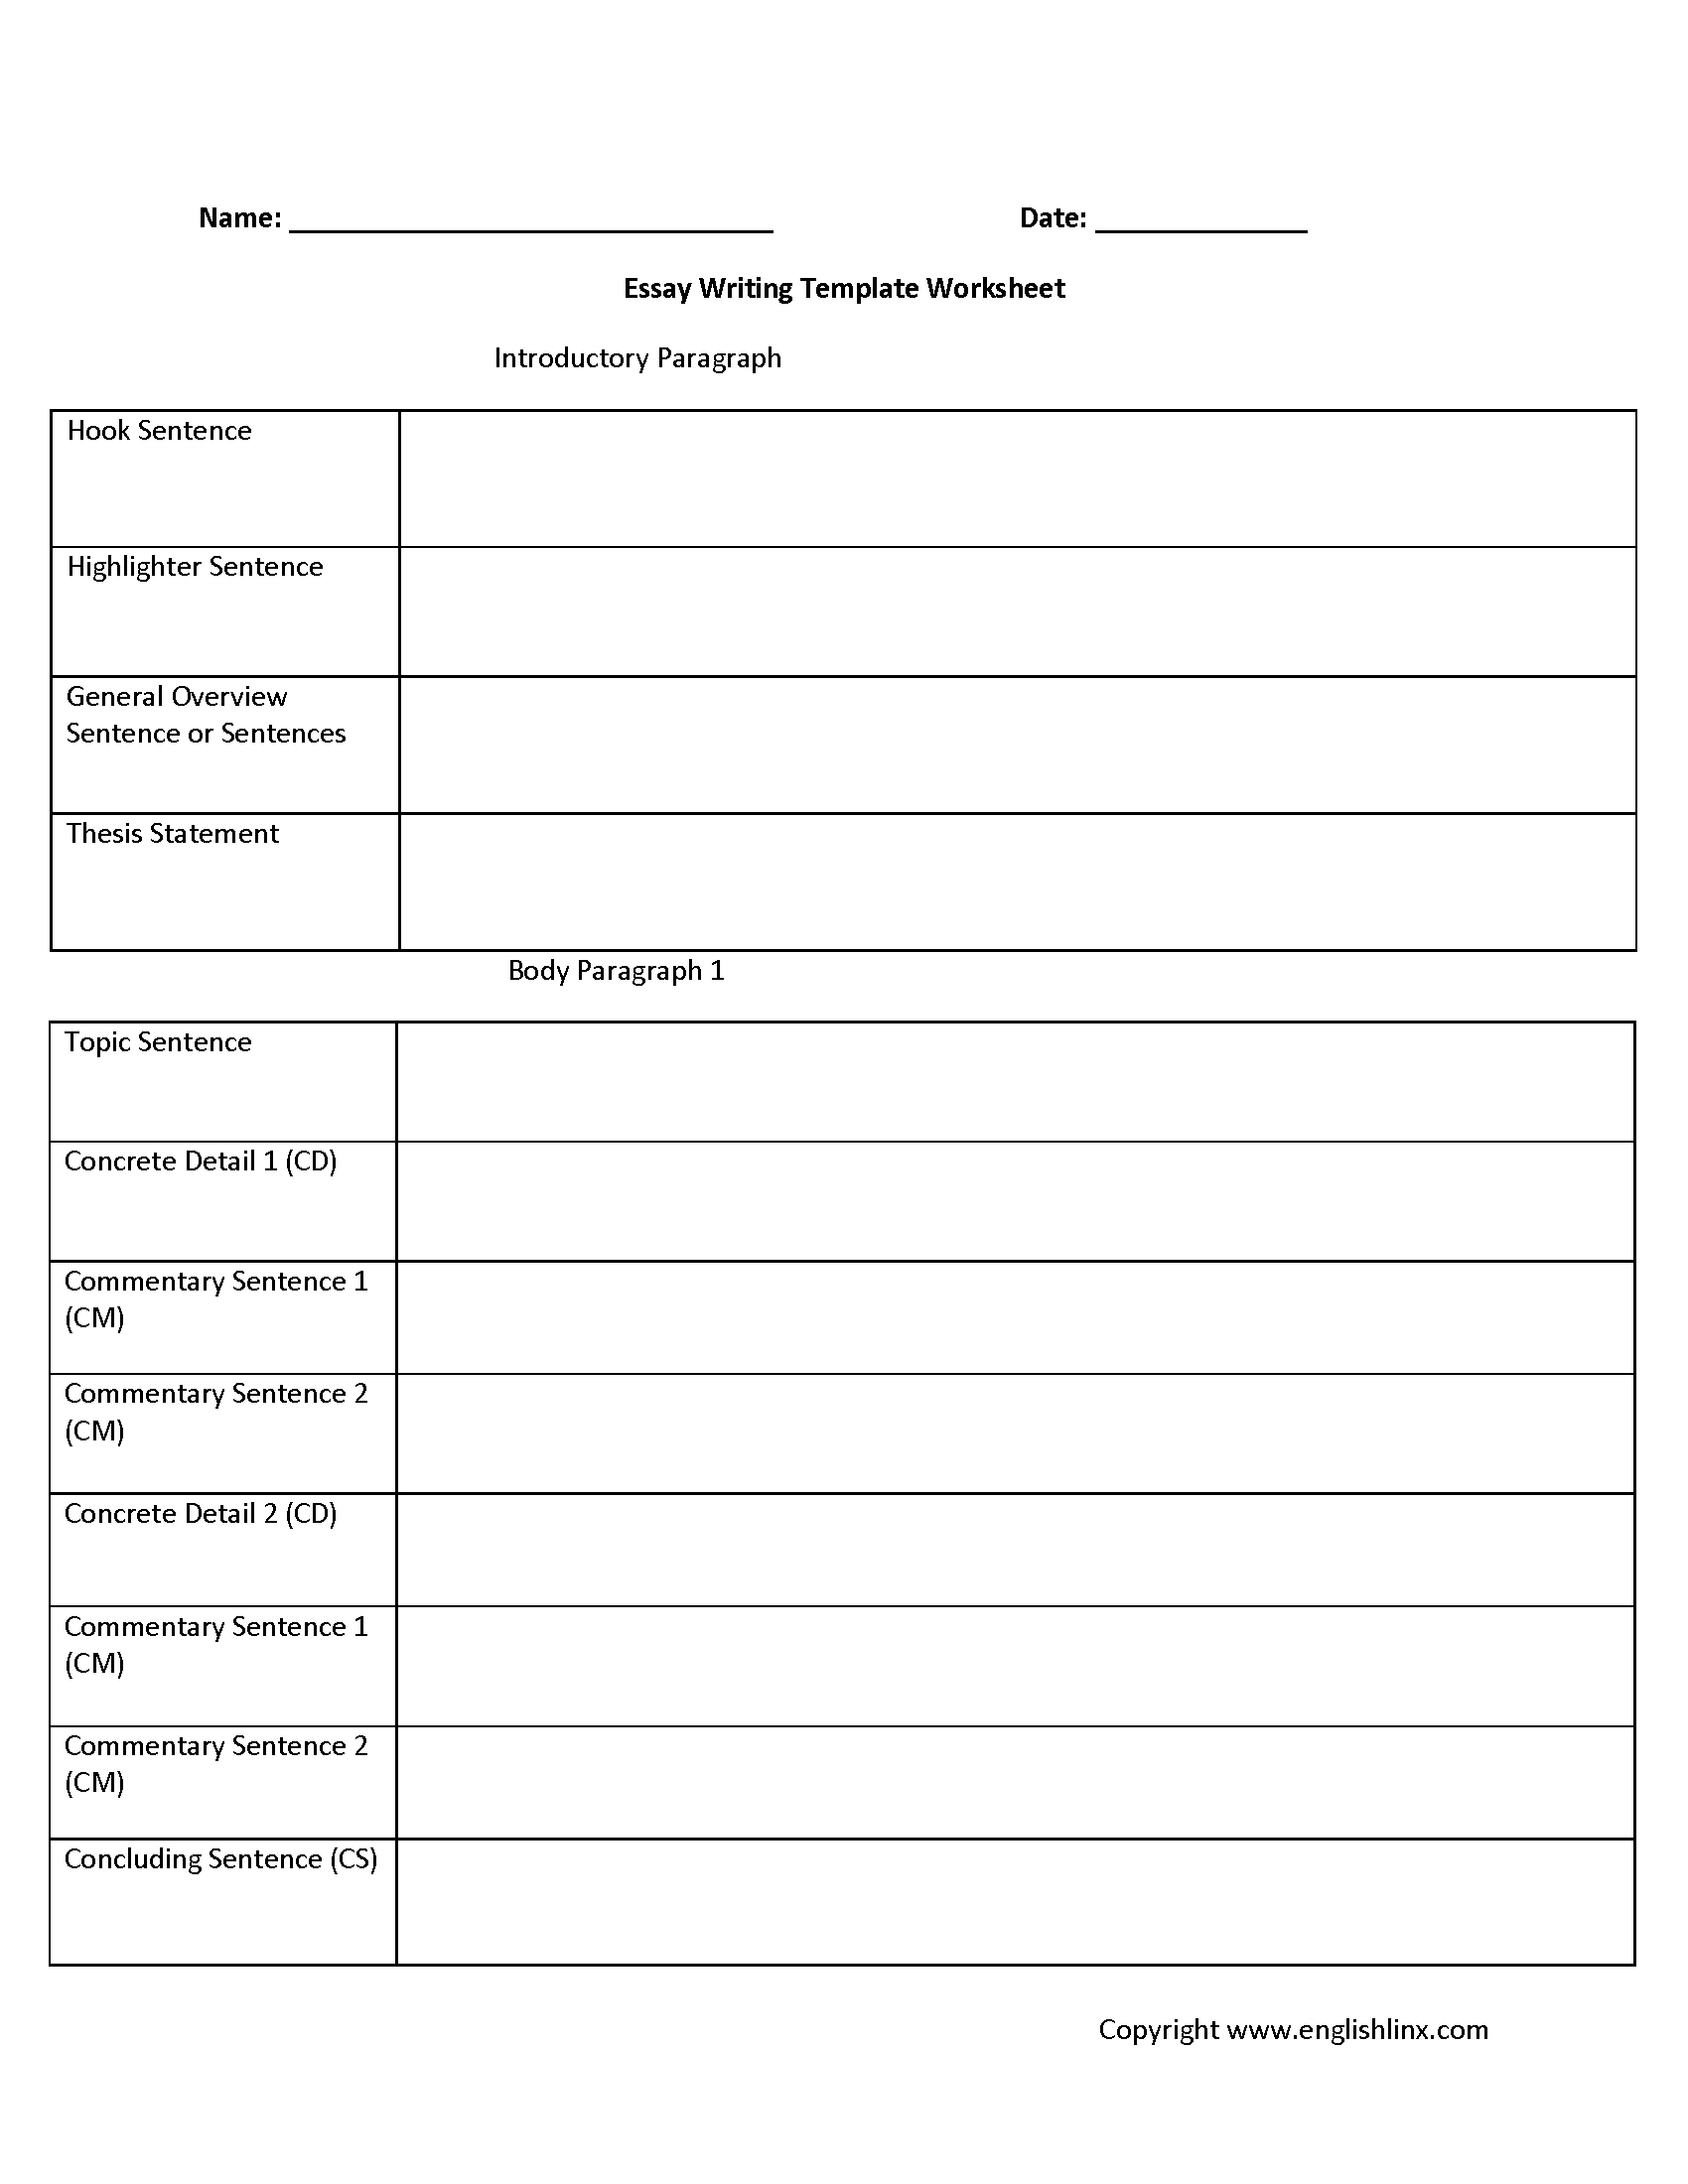 Writing Template Worksheets